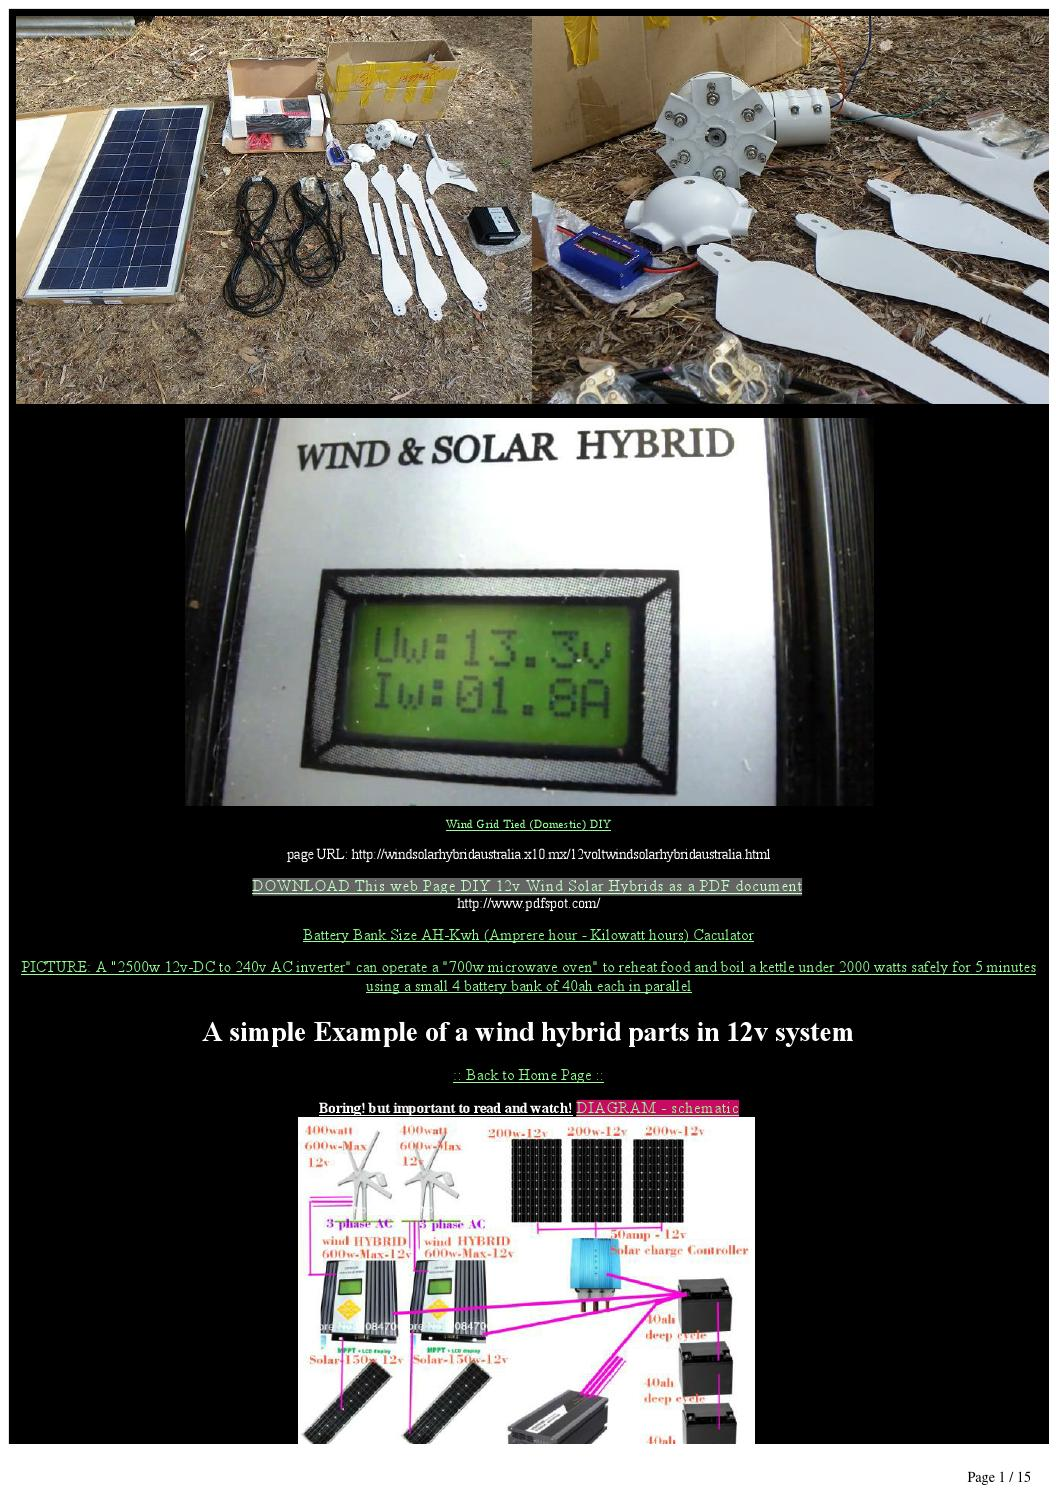 Diy 12v To 240v Ac  Solar Wind Hybrid Off Grid 1kw Wind 1kw Solar By Samuel Marchant